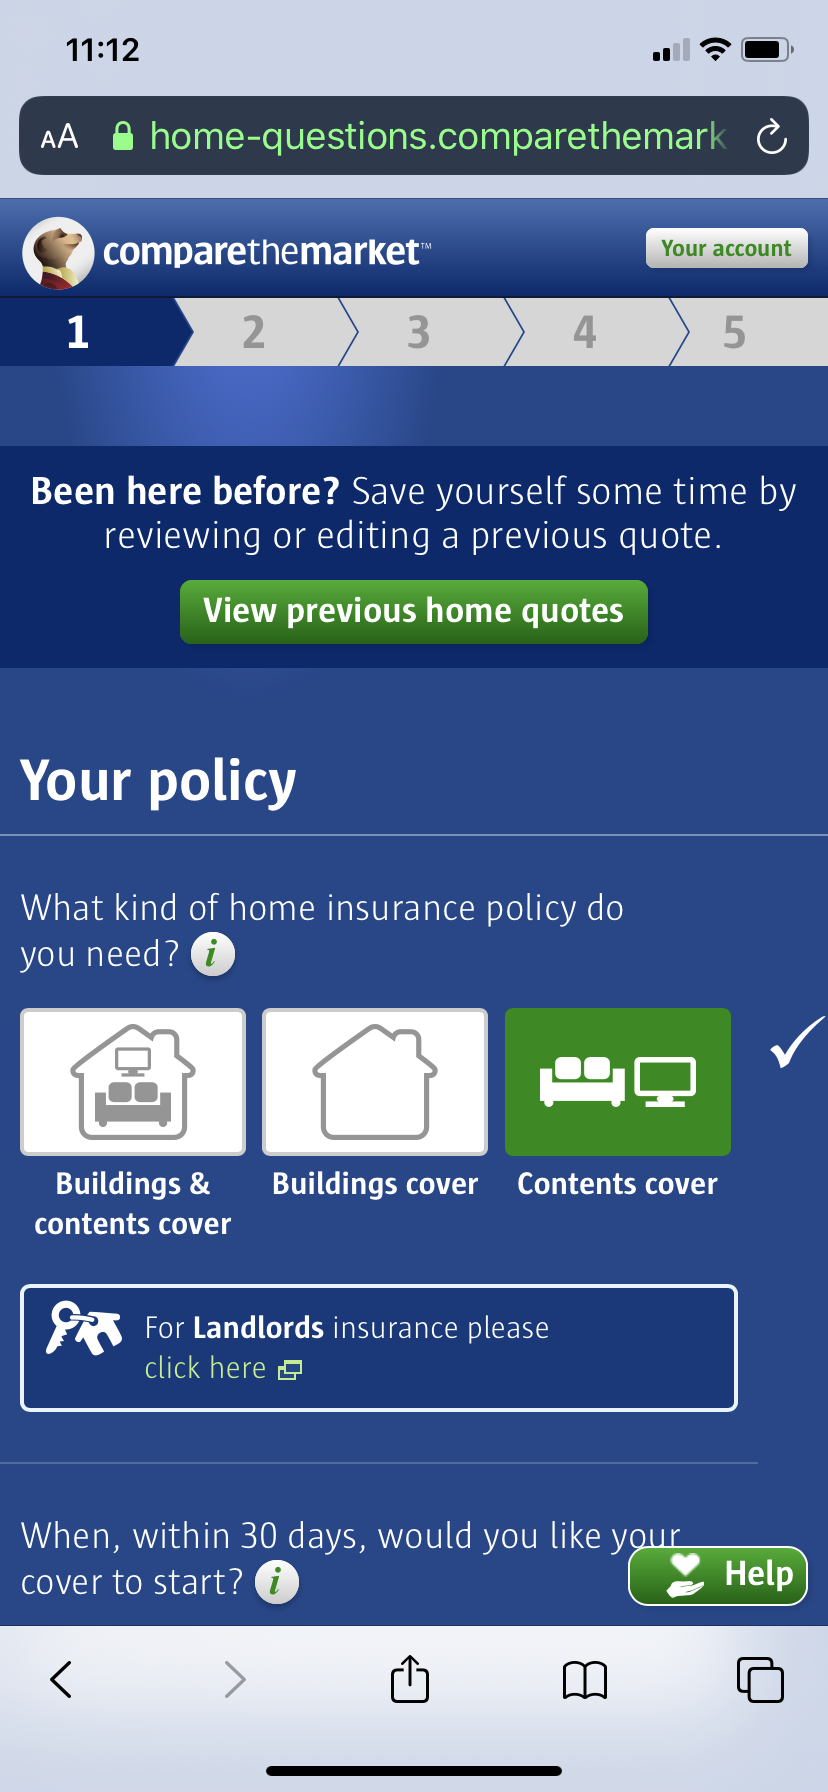 mobile form design example from compare the market